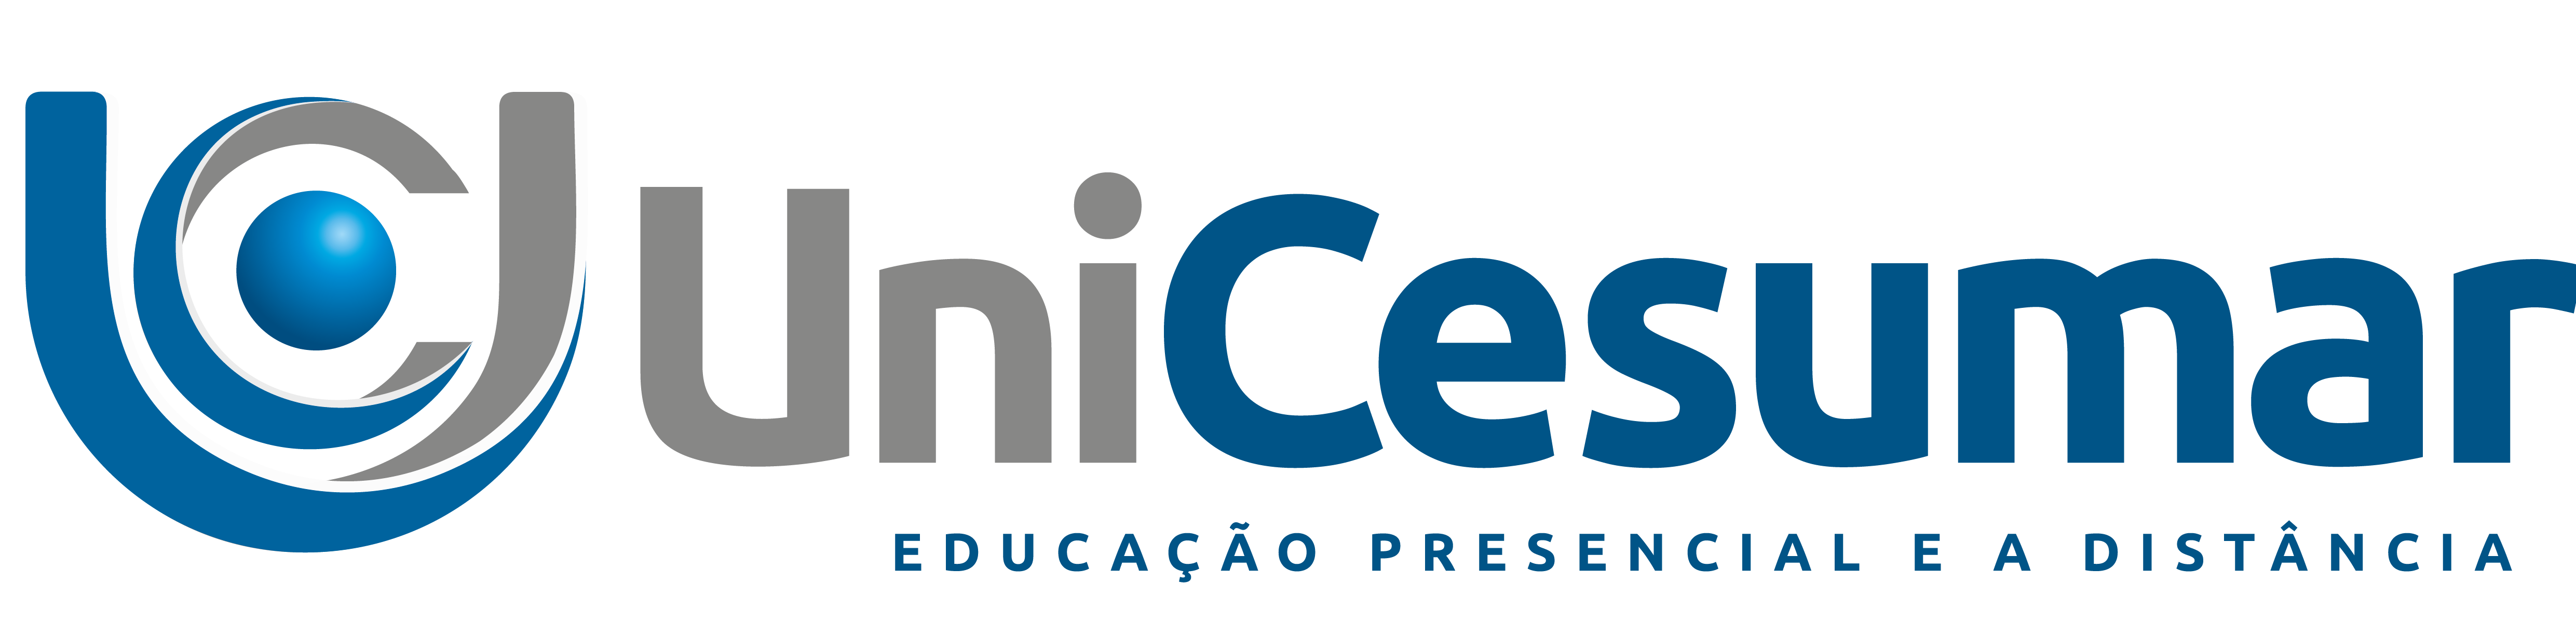 logo_unicesumar_horizontal_original